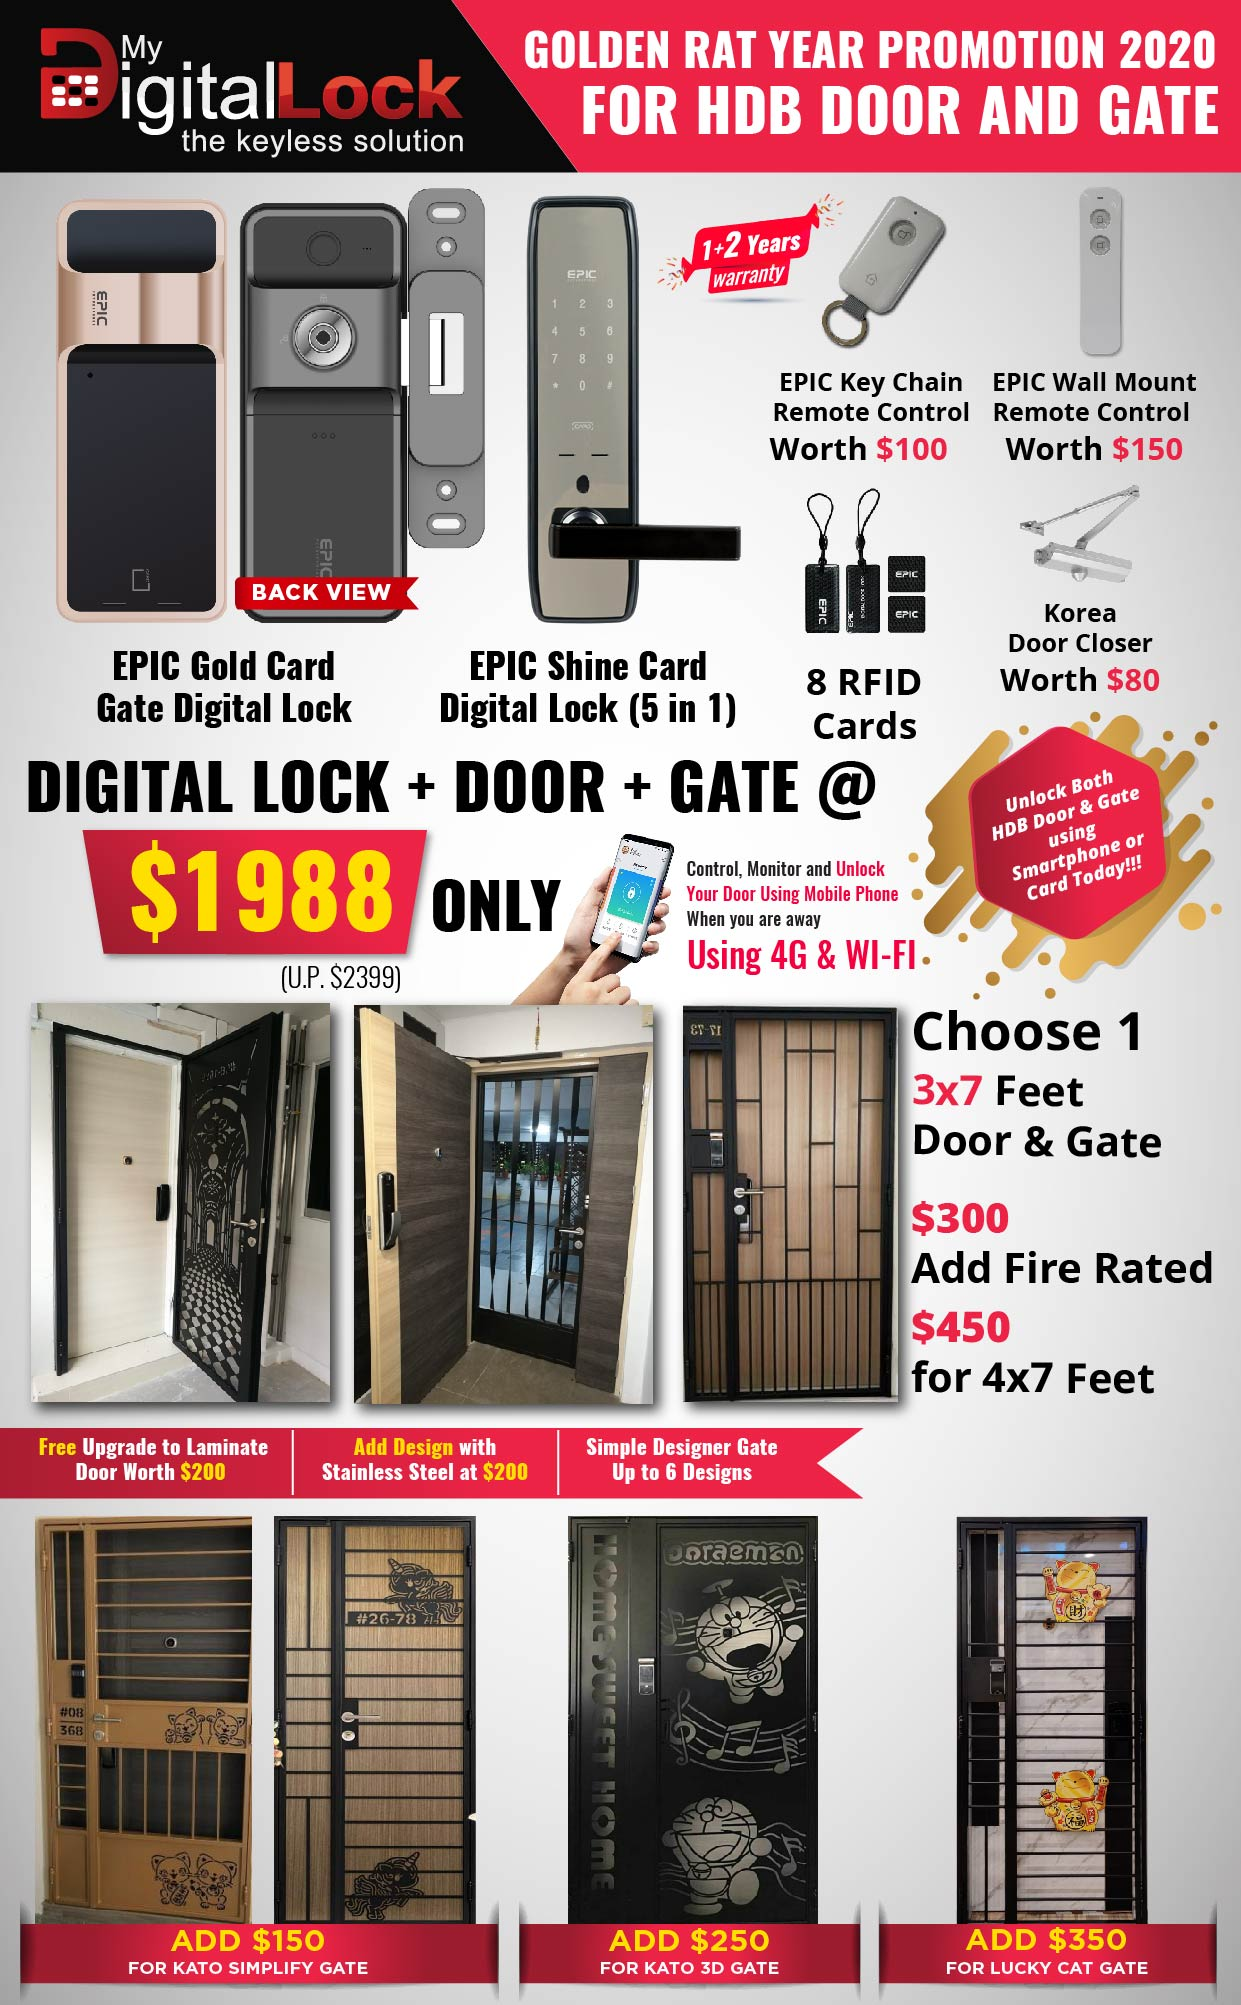 Golden Rat Year HDB Door and Gate Promotion with EPIC Gold Card Gate Digital Lock and Shine Card Digital Lock (5 in 1)